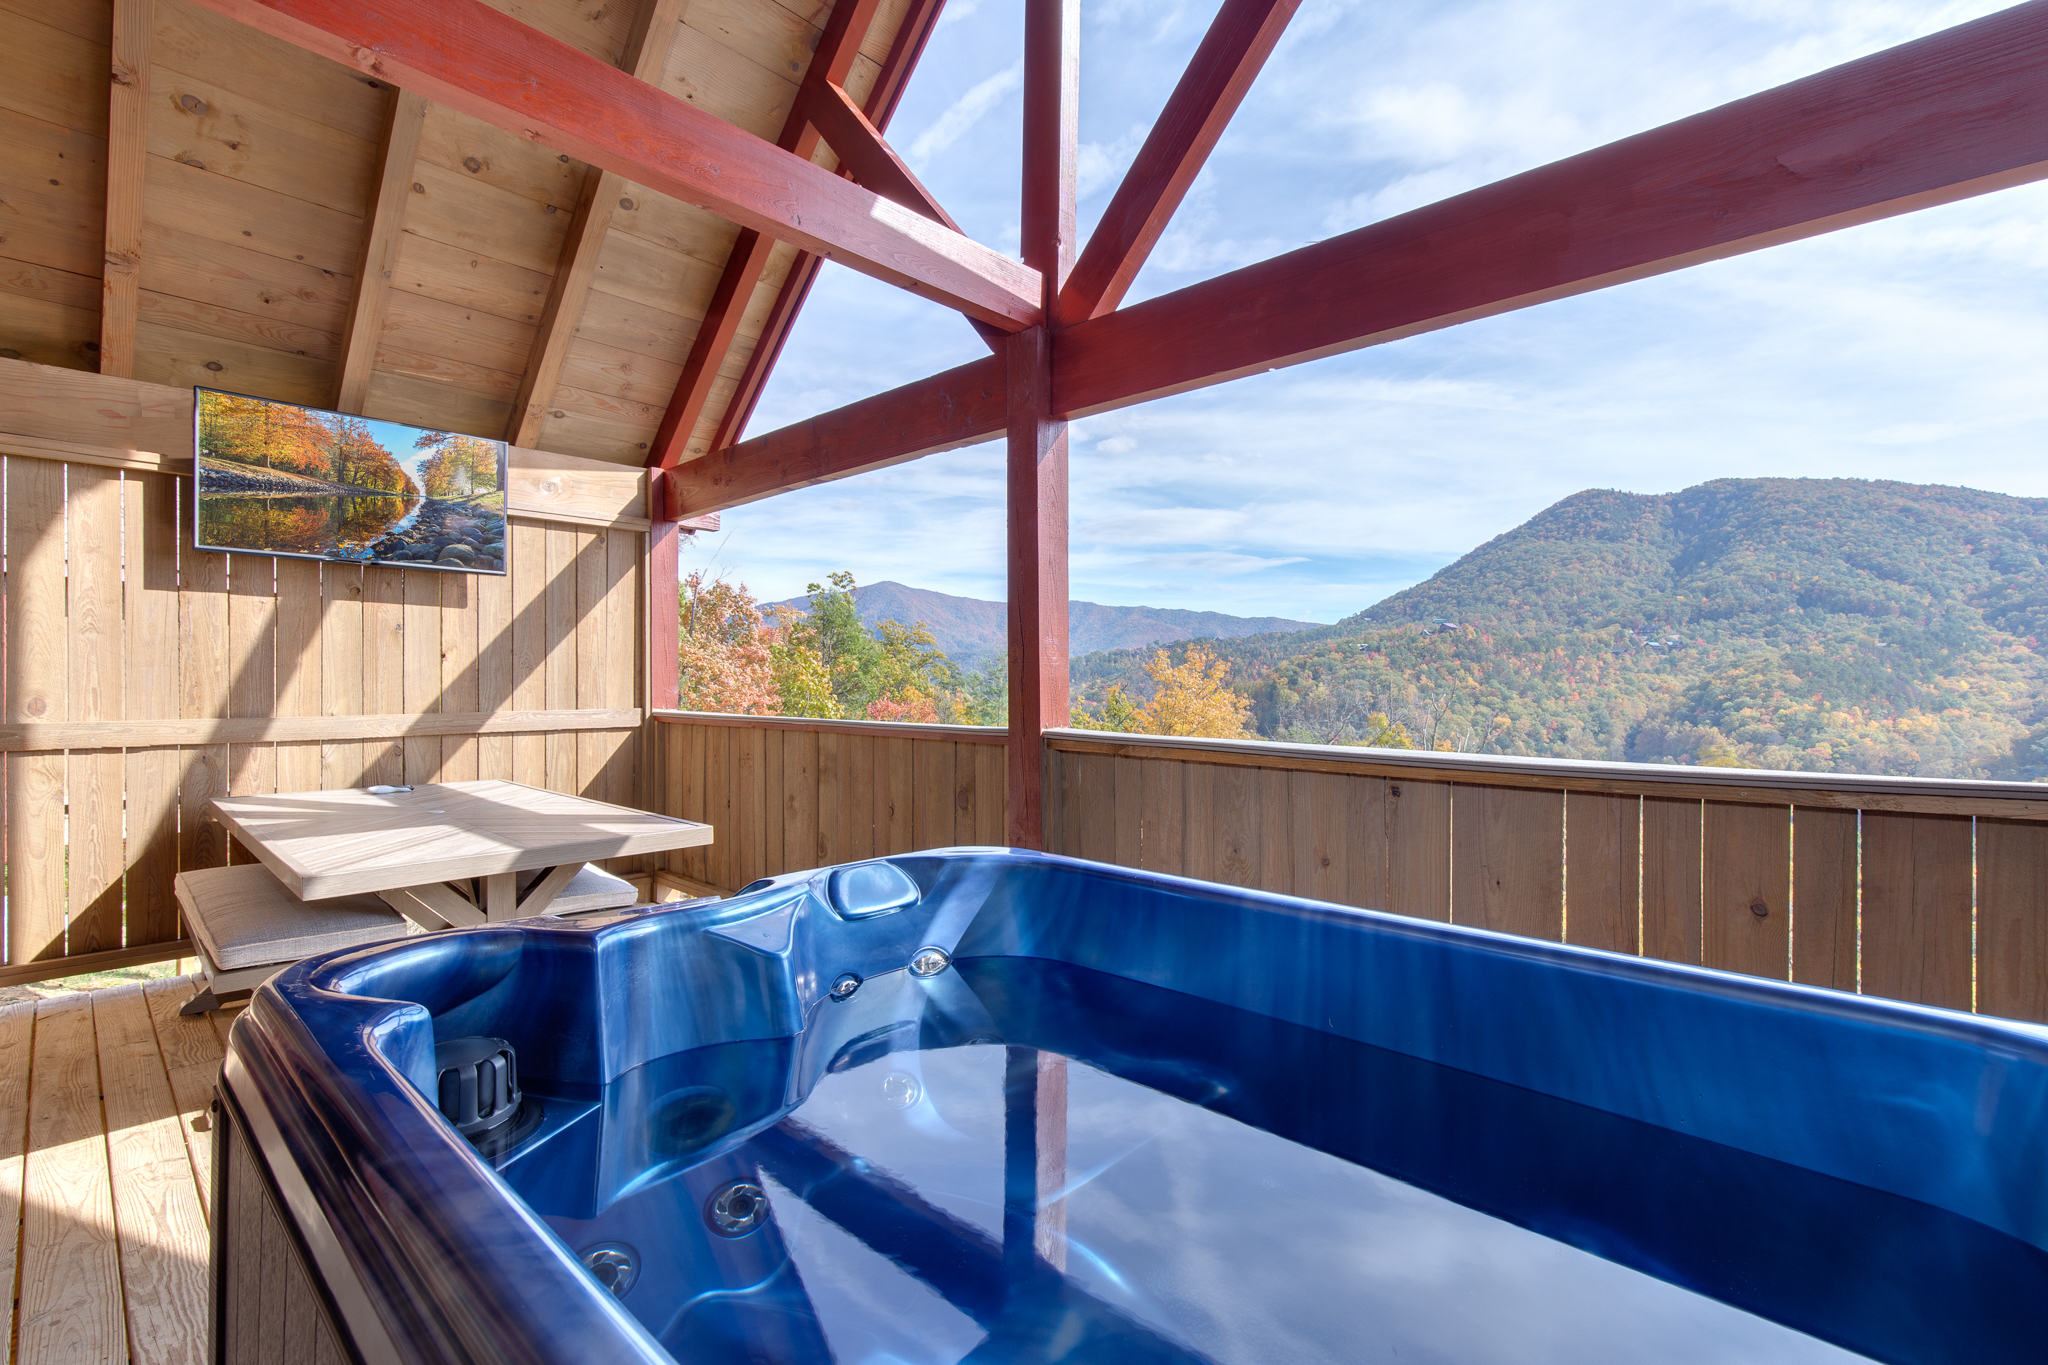 Pigeon Forge Cabins From 85 Get 400 In Free Tickets